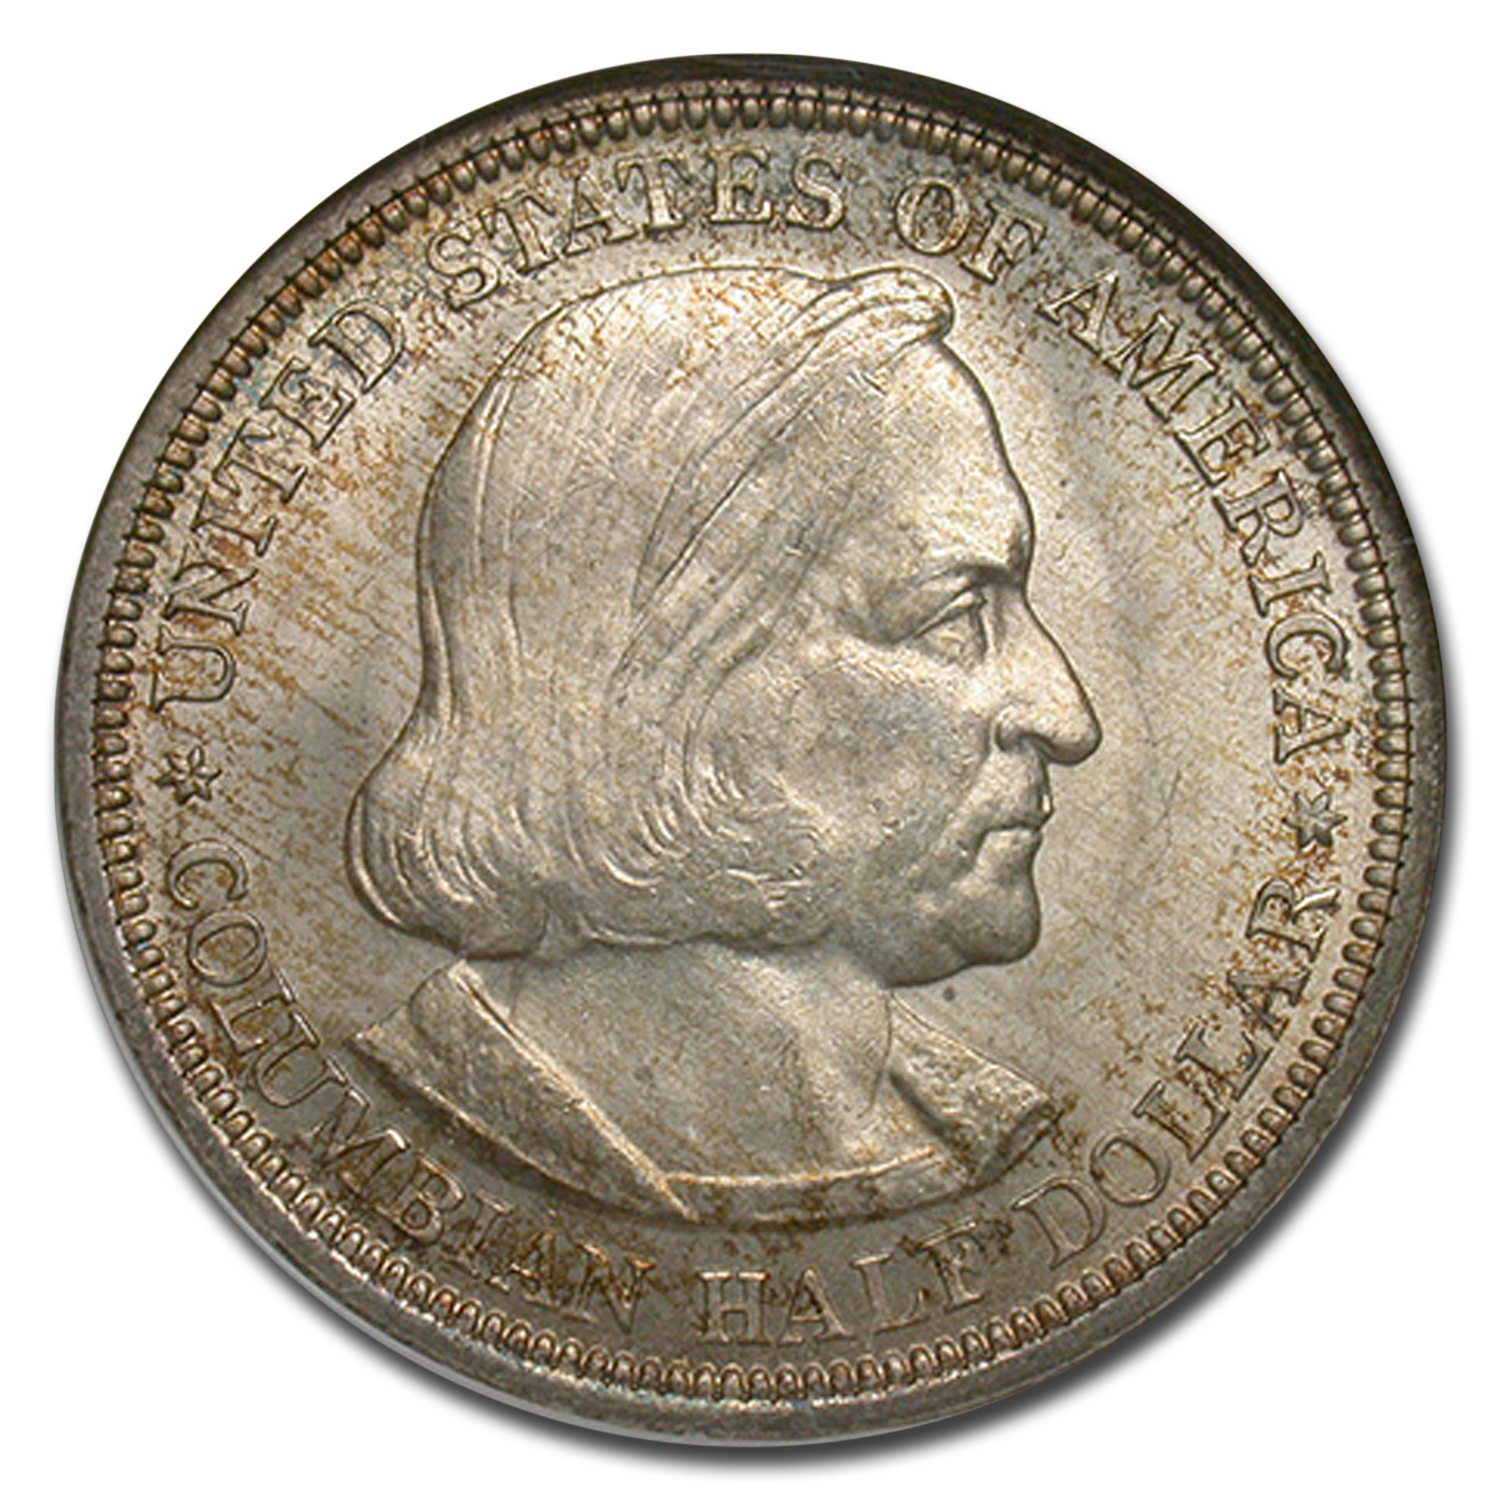 1892 Columbian Expo Half Dollar MS-64 NGC CAC (Toned)